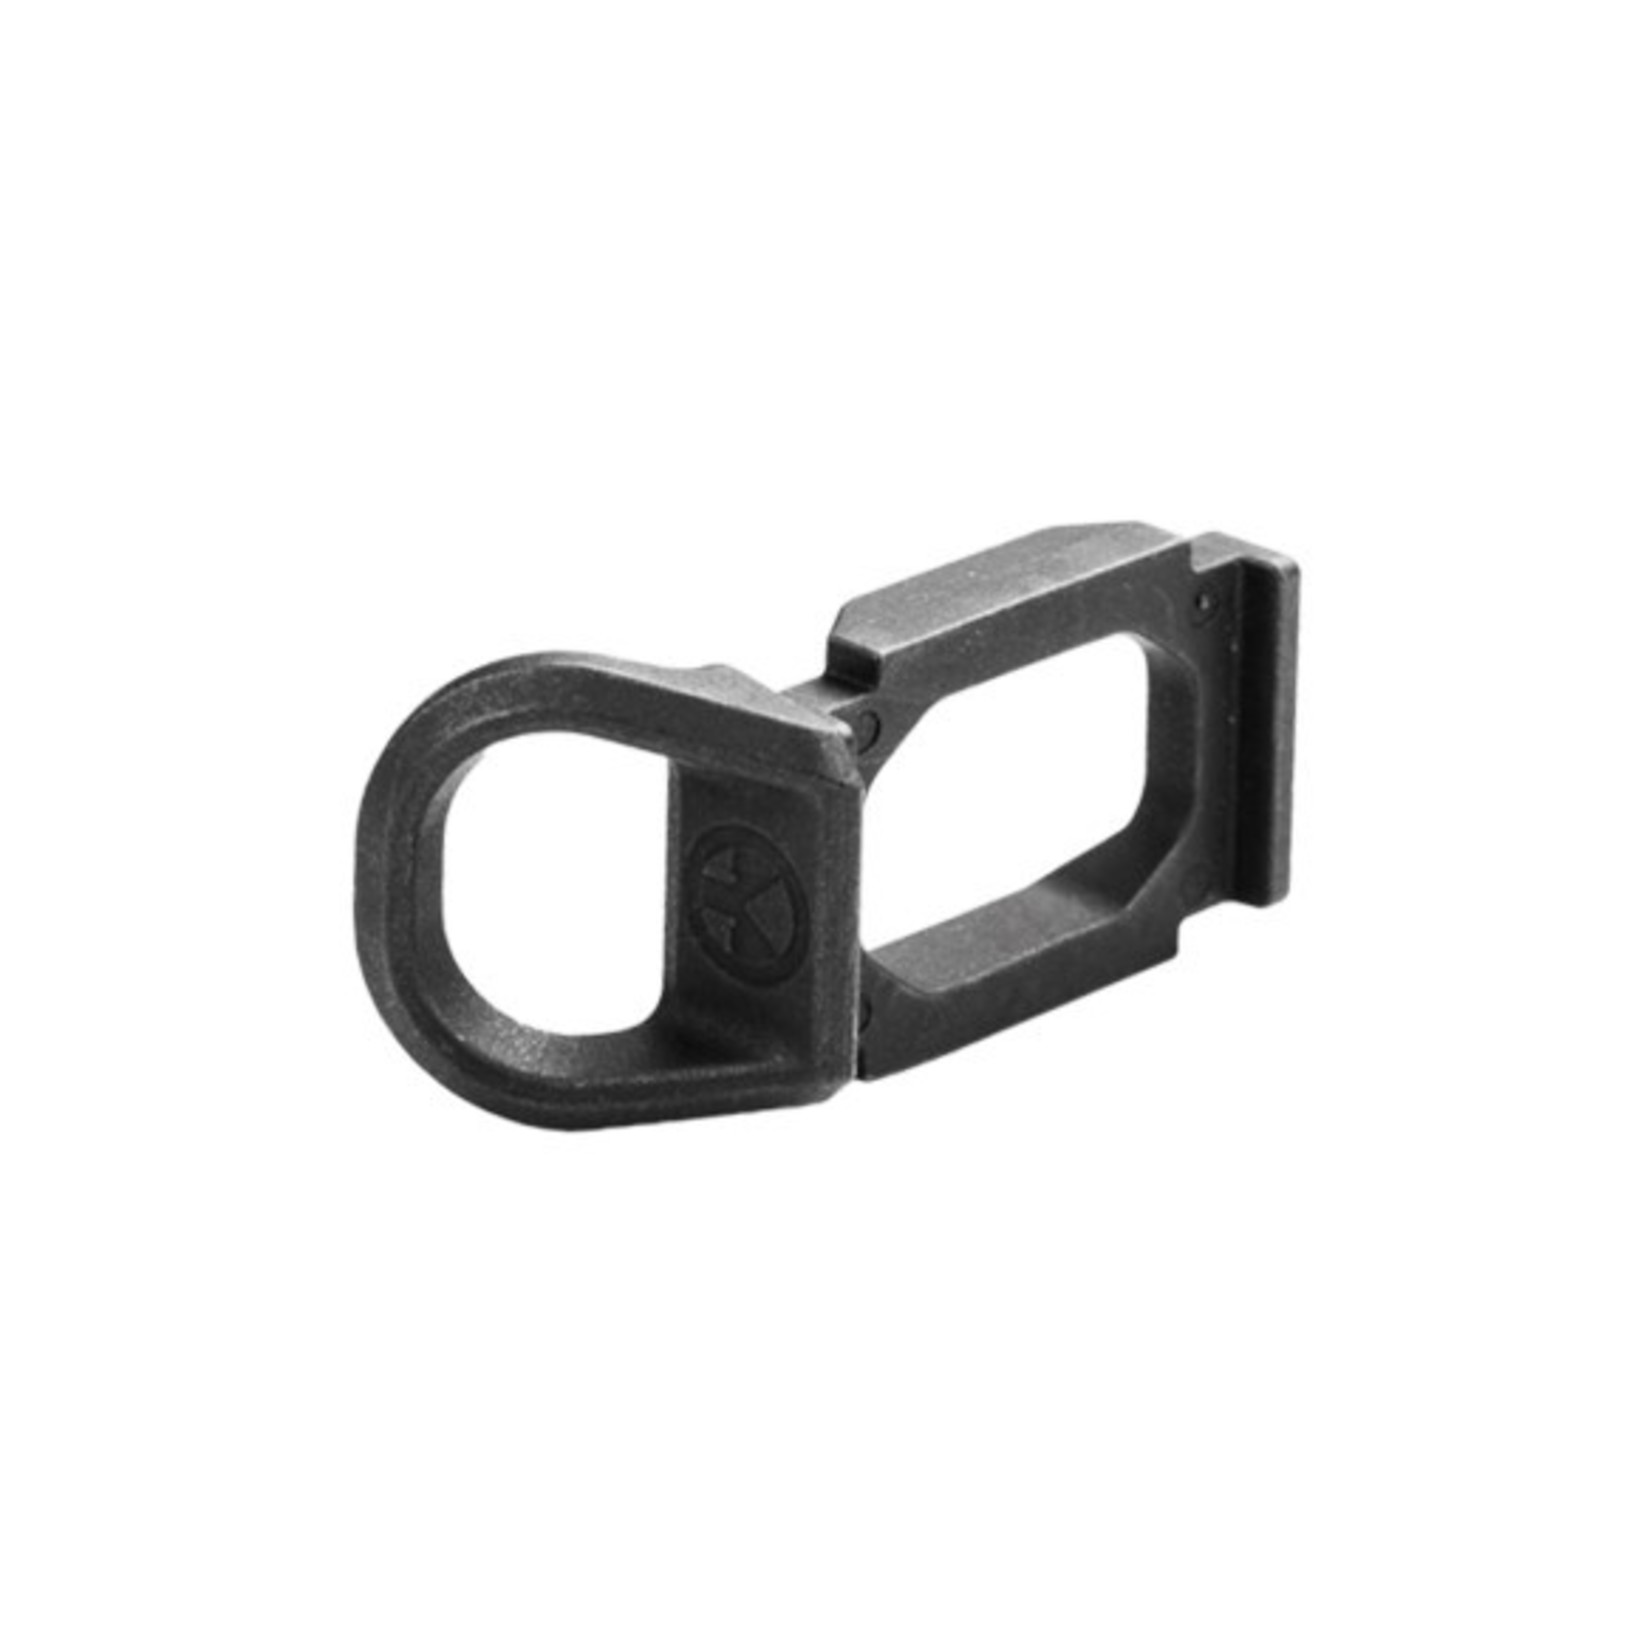 MAGPUL SGA RECEIVER SLING MOUNT – REMINGTON SGA STOCK